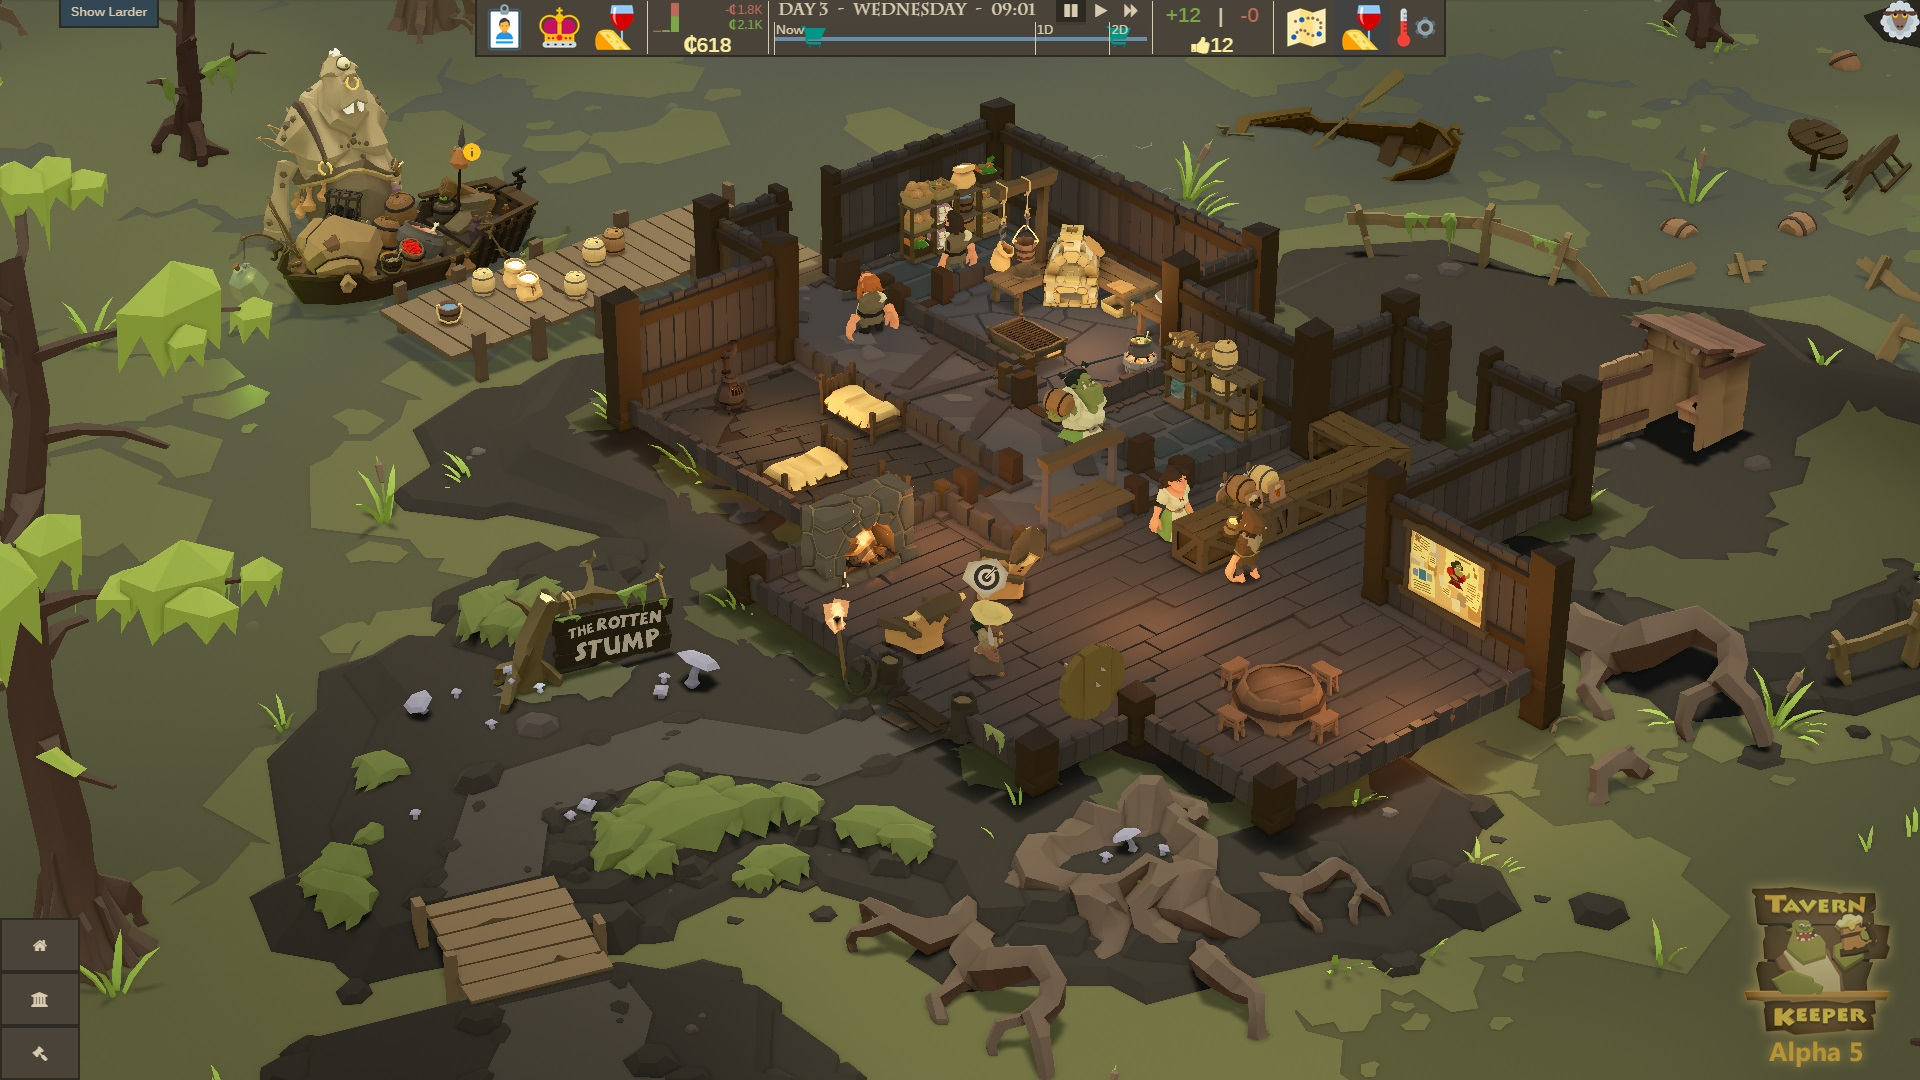 Tavern Keeper Alpha Screenshot 4